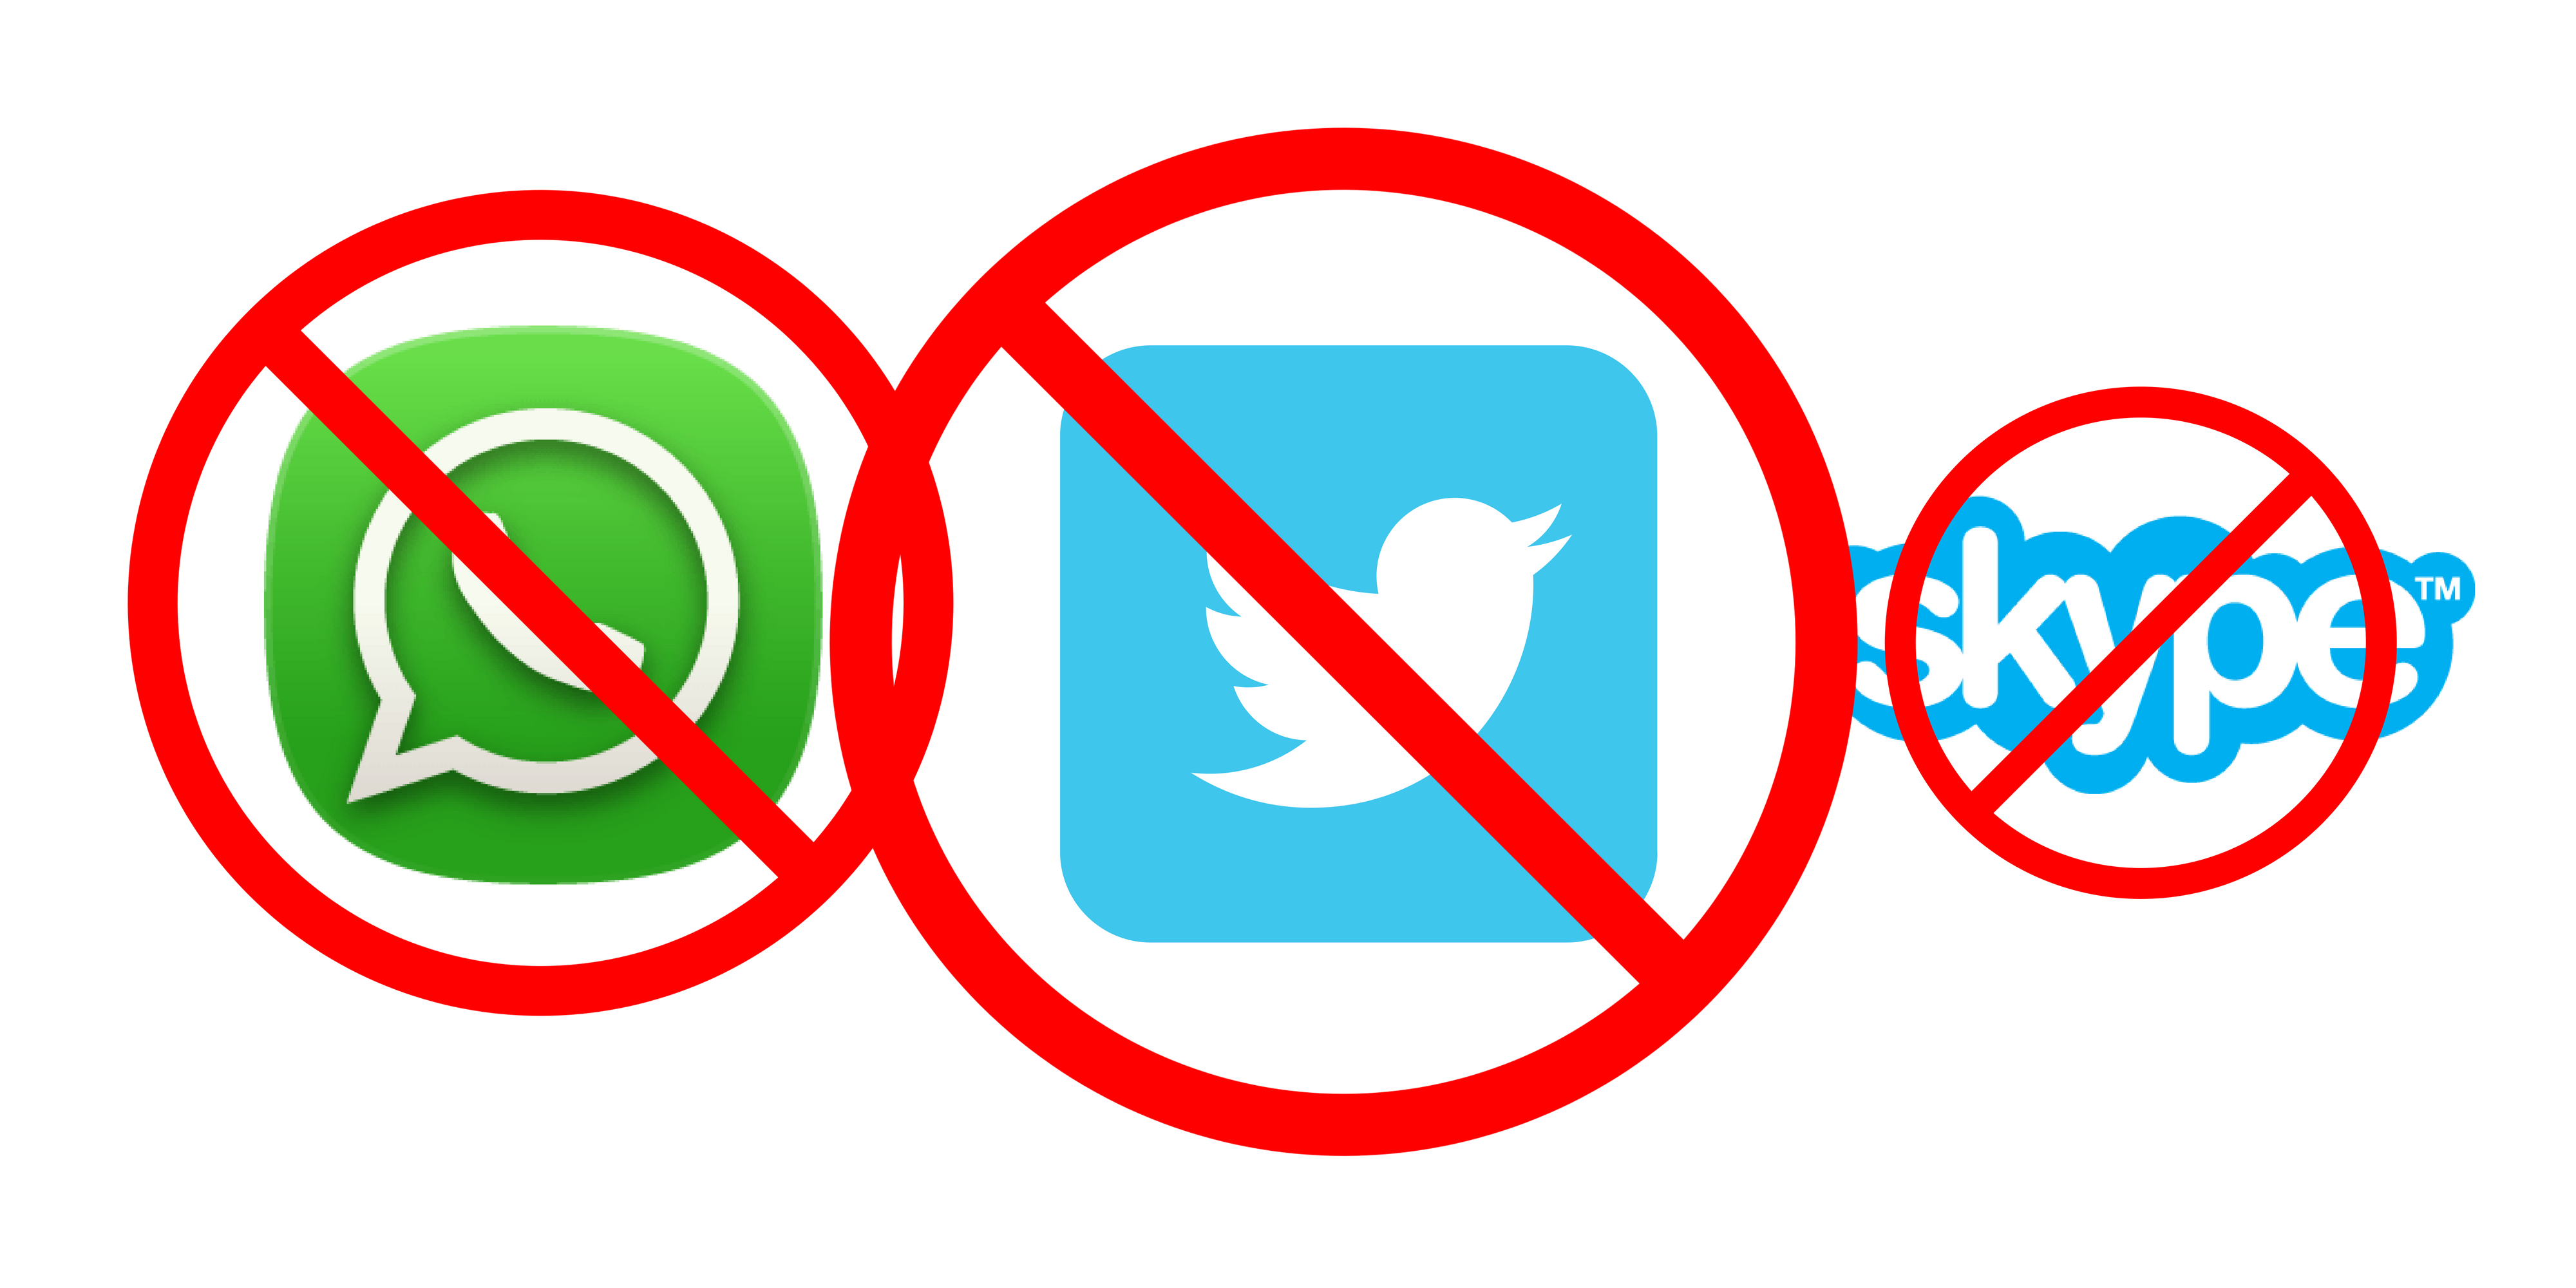 YouTube, WhatsApp, Skype, Twitter, and Other Social Media Sites Blocked by Turkey